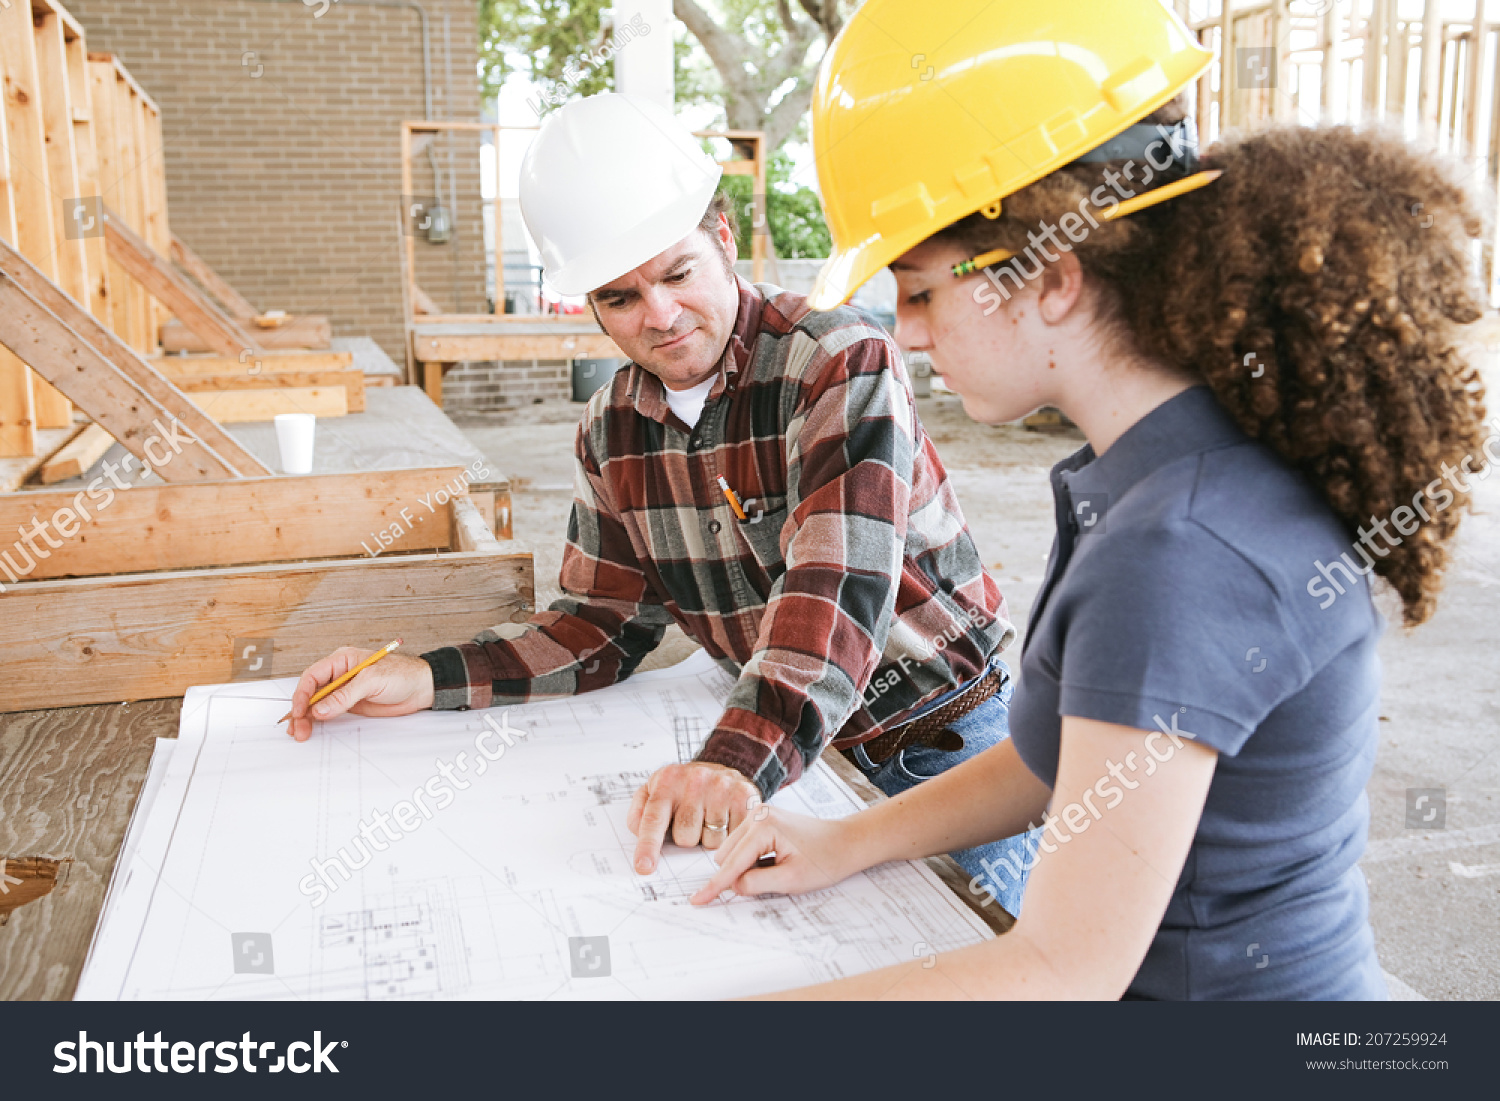 Vocational Education Student Learning To Read Construction